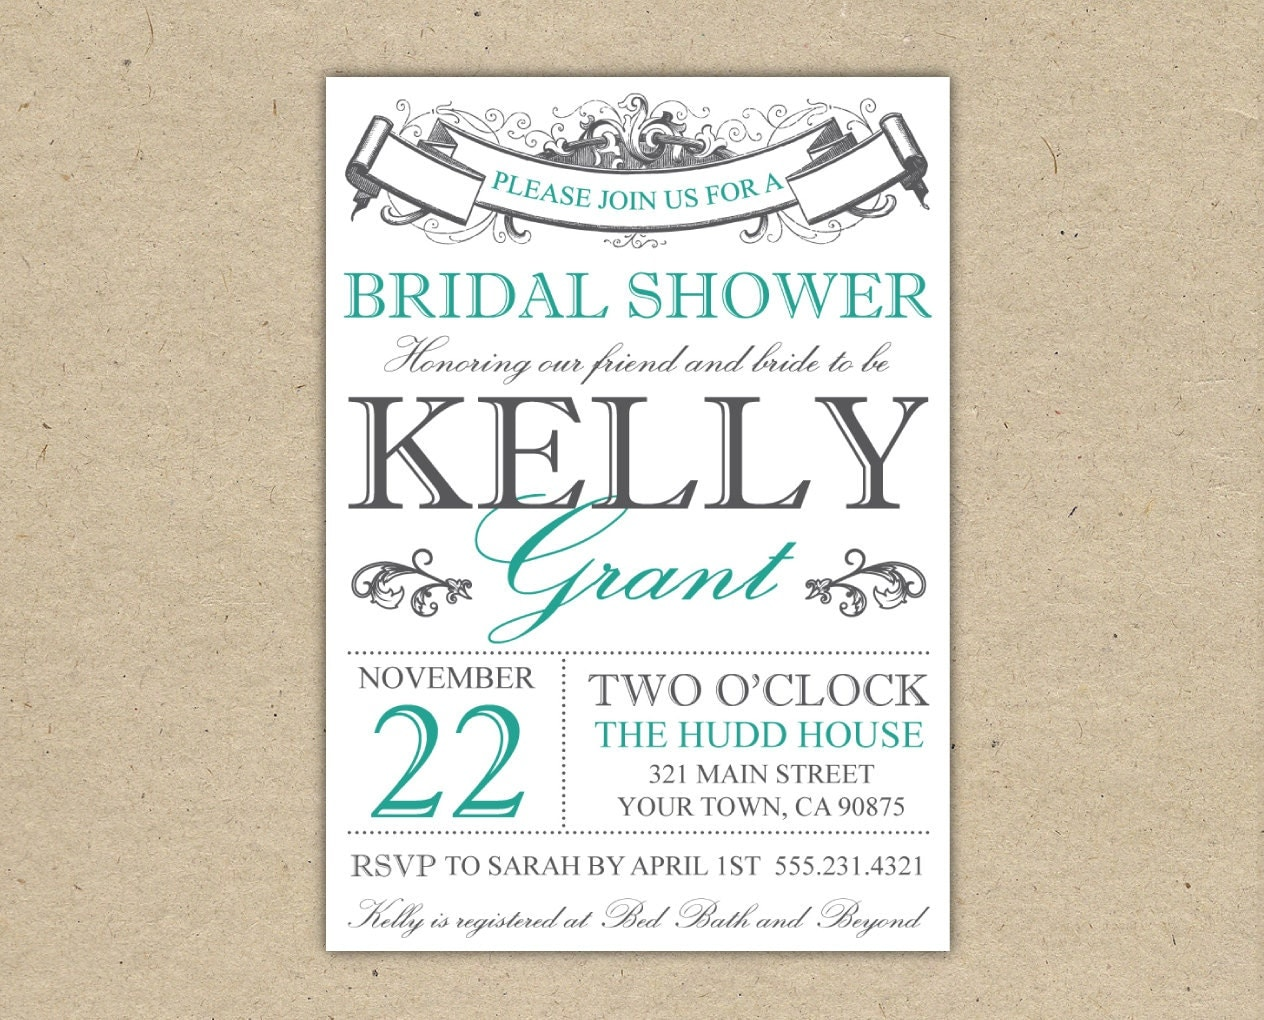 Bridal Shower Invitations Templates Printable Bridal shower invitation ...